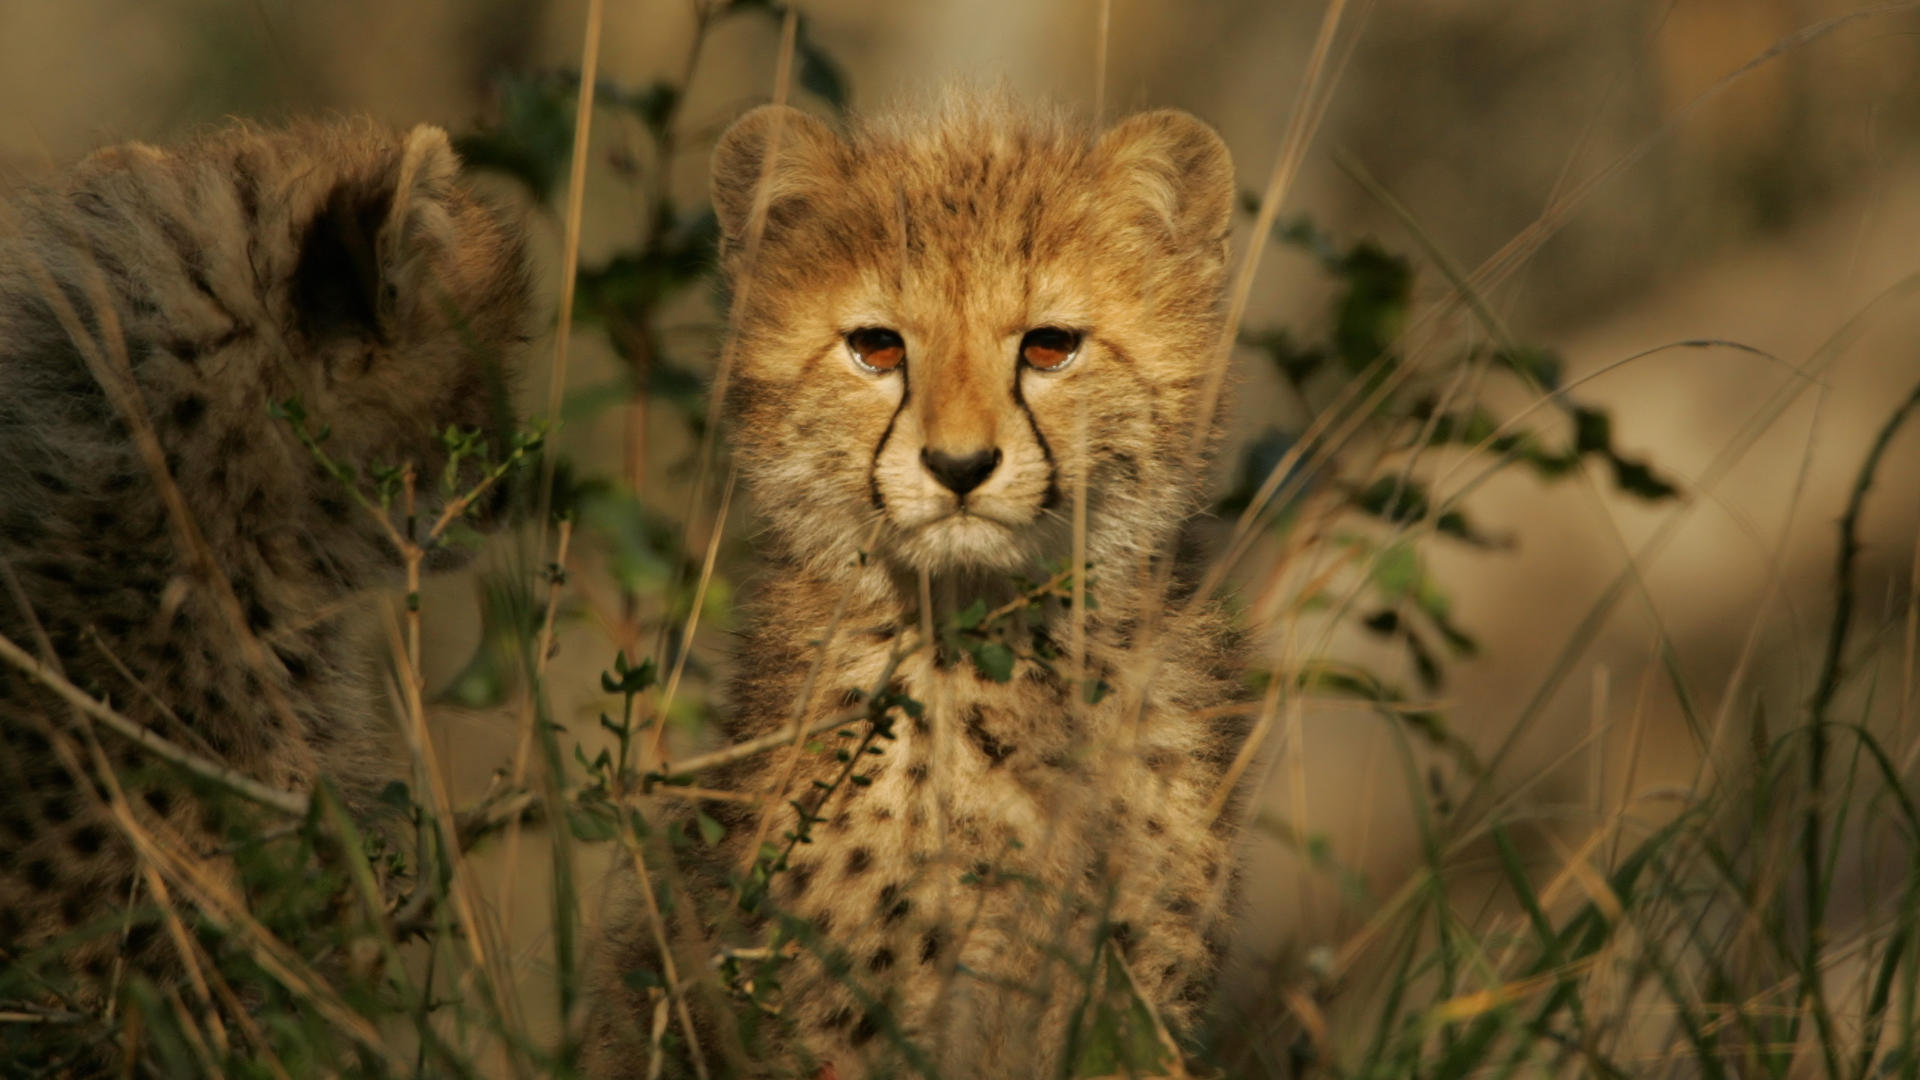 Collection of Cute Cheetah Wallpaper on HDWallpapers 1920x1080